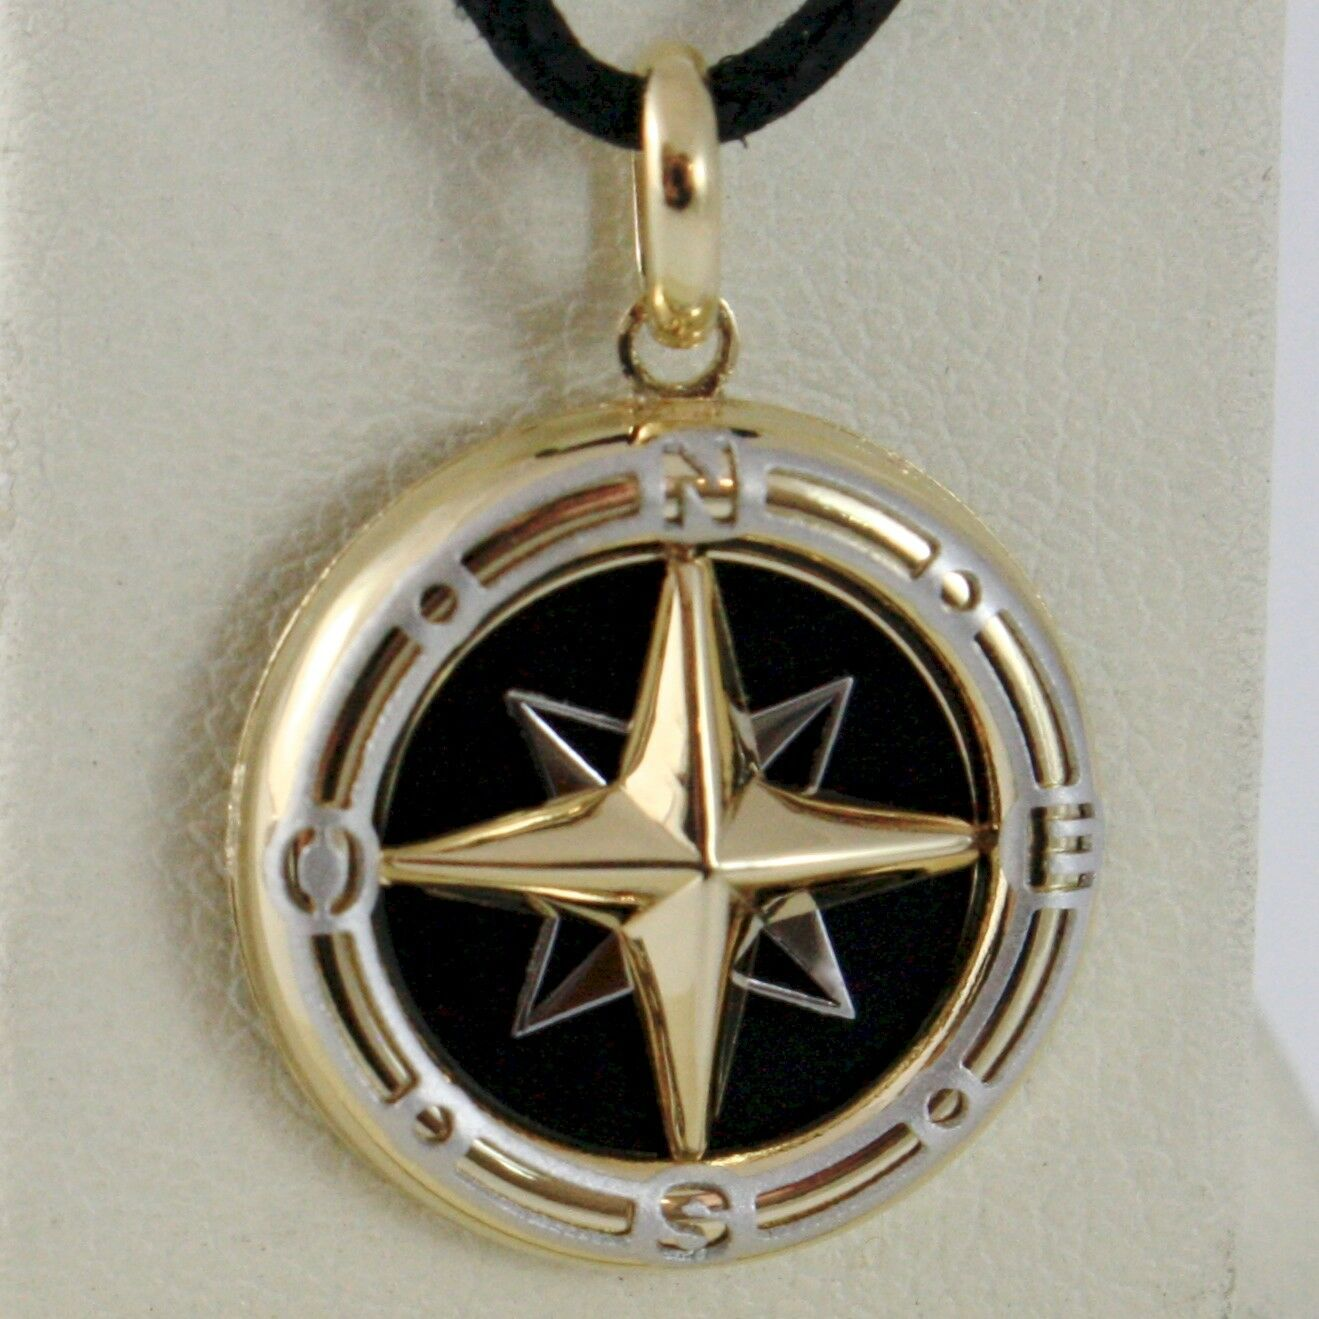 18K WHITE YELLOW GOLD ONYX 16 MM WIND ROSE COMPASS PENDANT, STAR, MADE IN ITALY